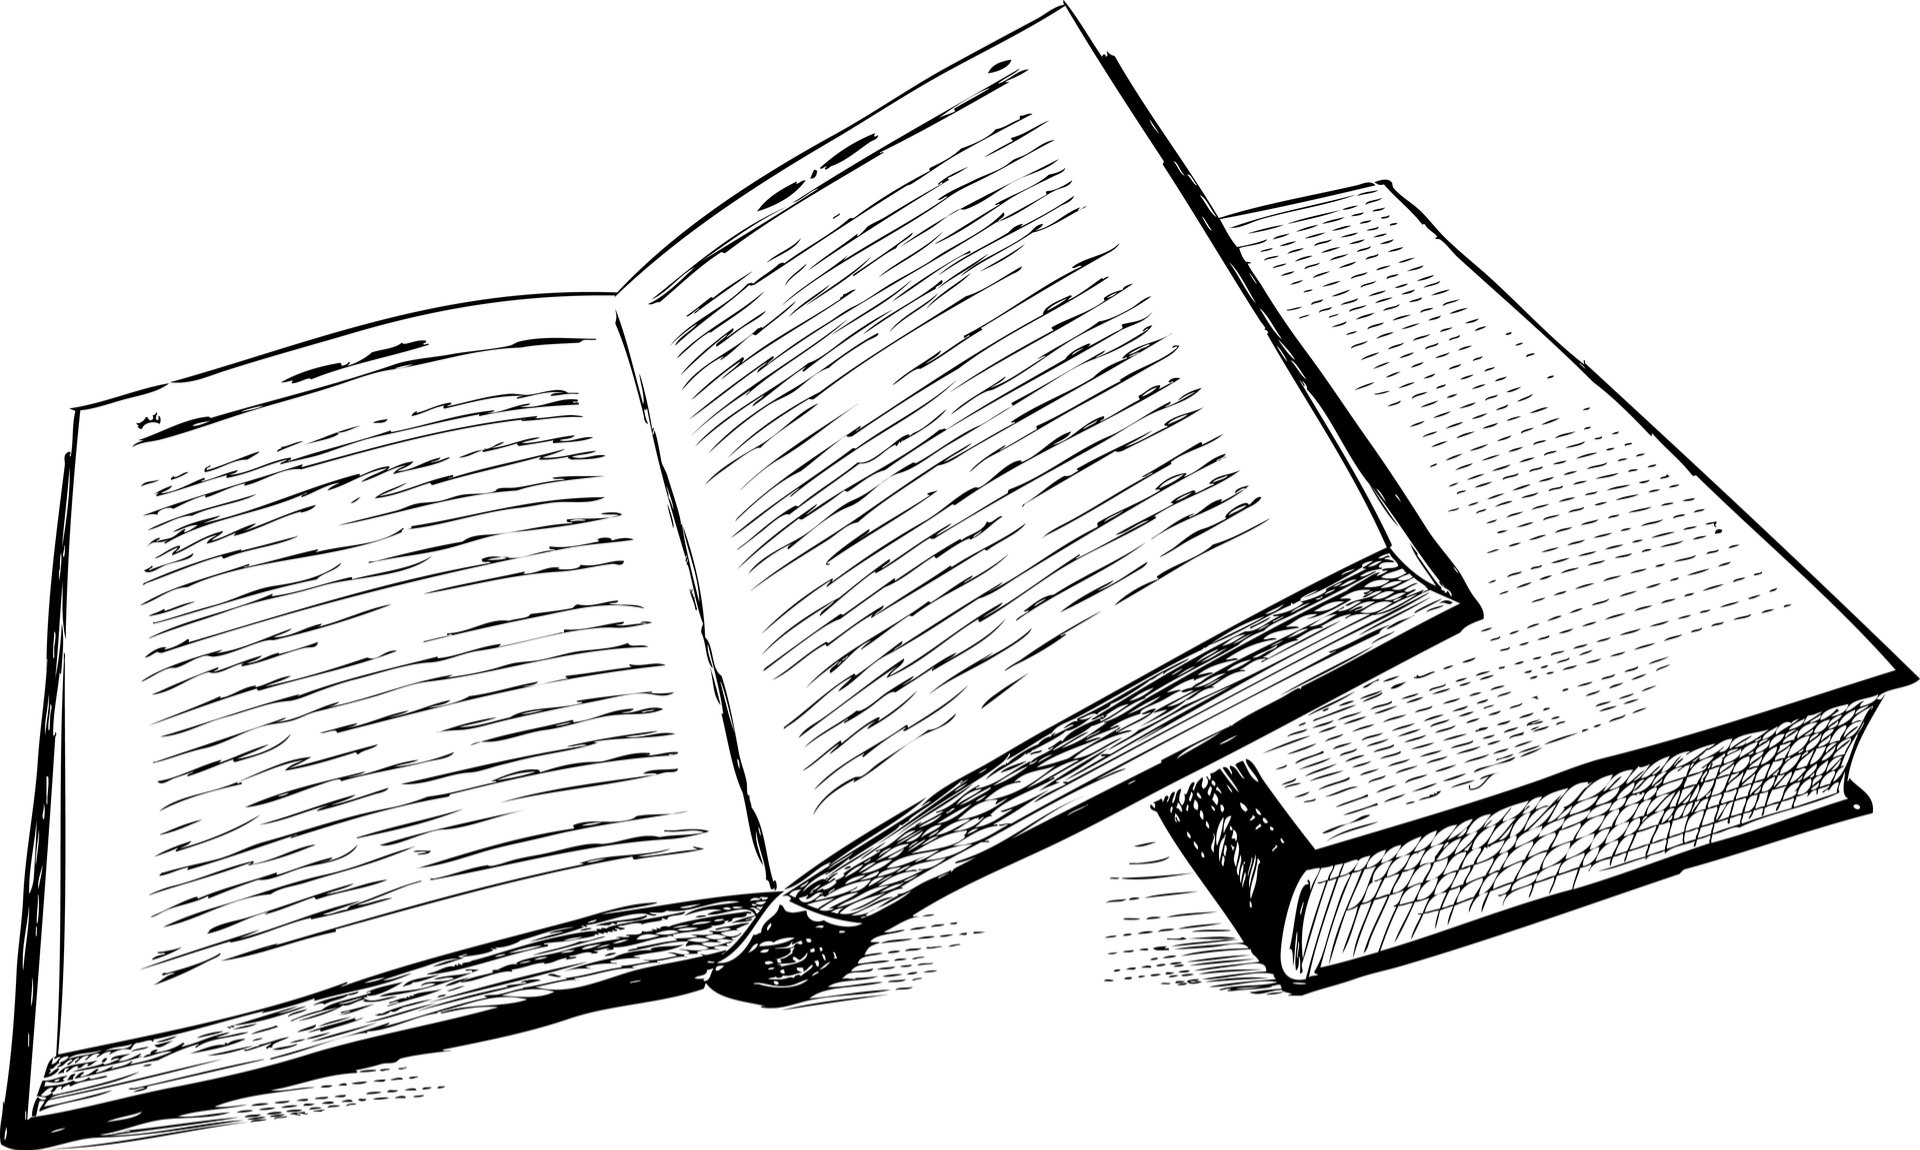 Black and white drawing of two books